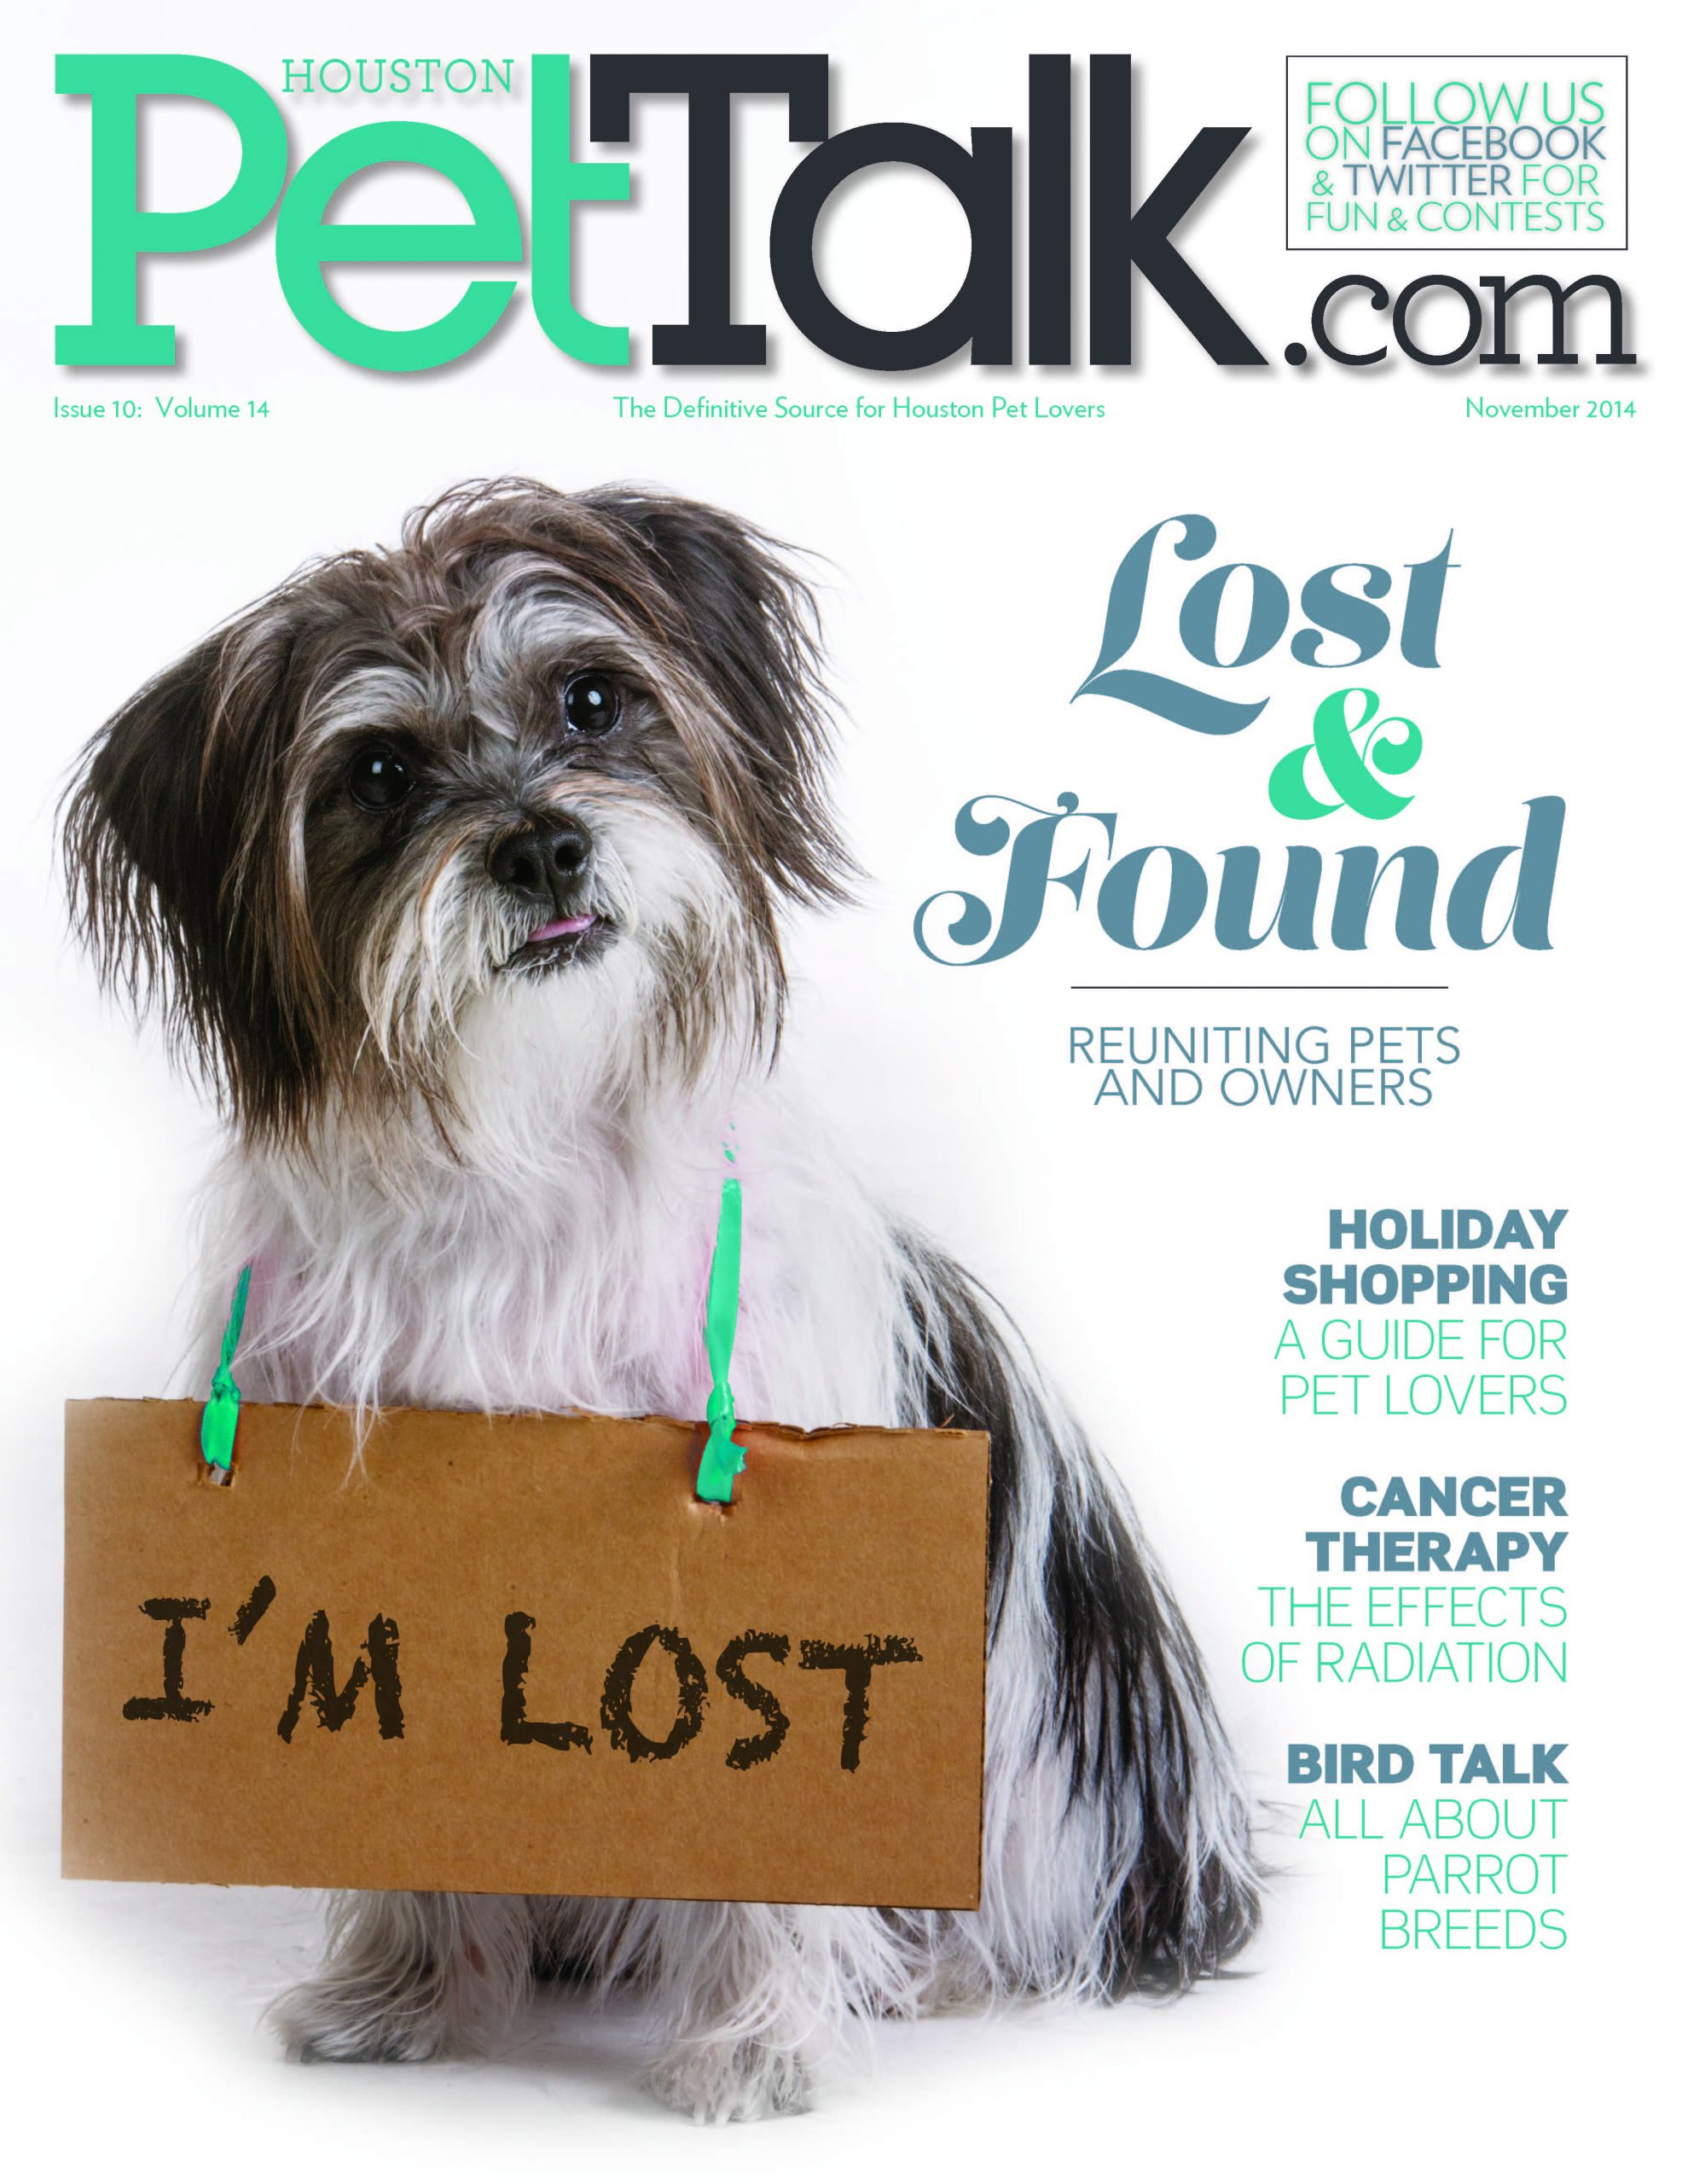 November 2014 Digital Issue of Houston PetTalk